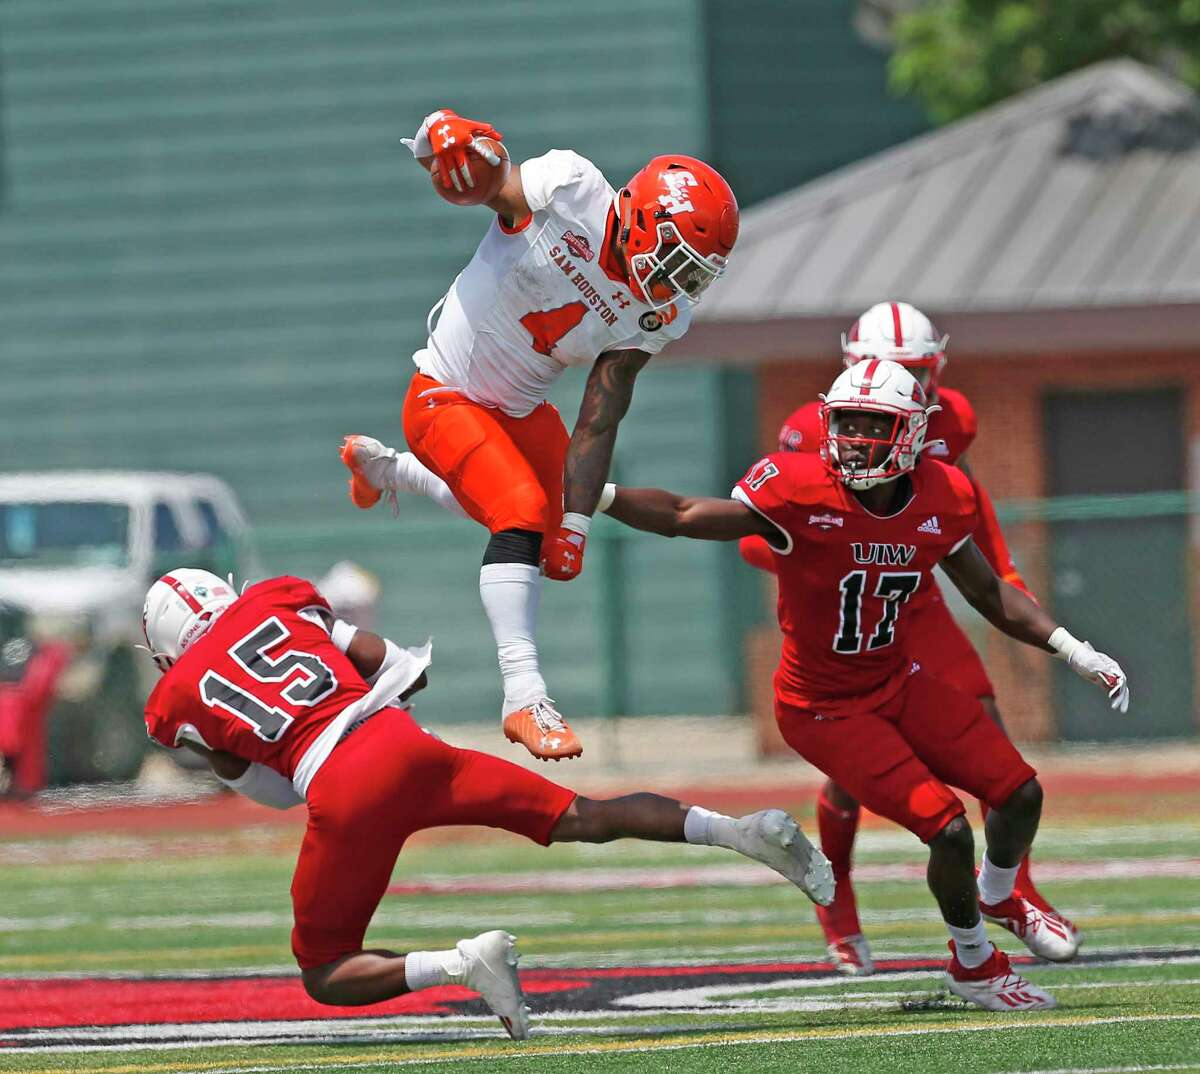 Sam Houston RB Ramon Jefferson leaps over UIW Shawn Holton. College Football UIW vs. Sam Houston on Saturday, April 17, 2021 at UIW.